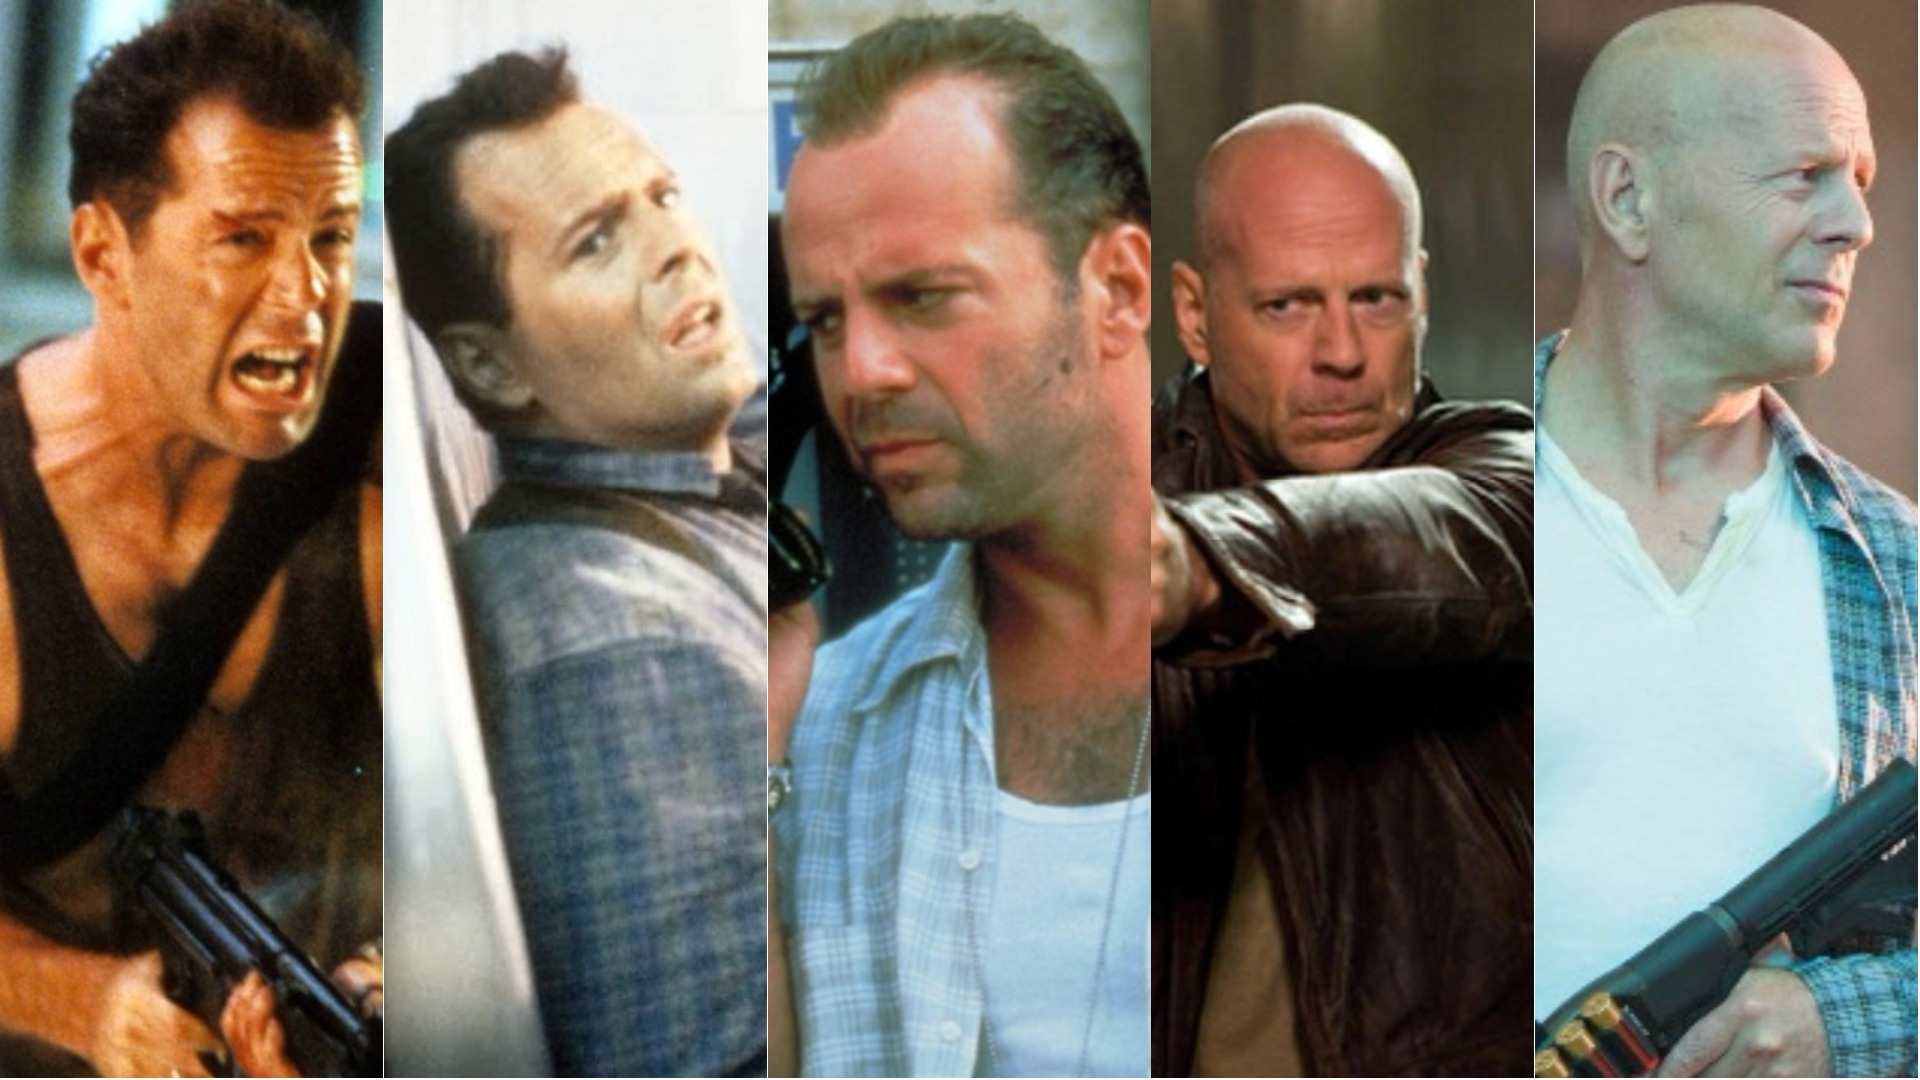 A Die Hard movie collage.